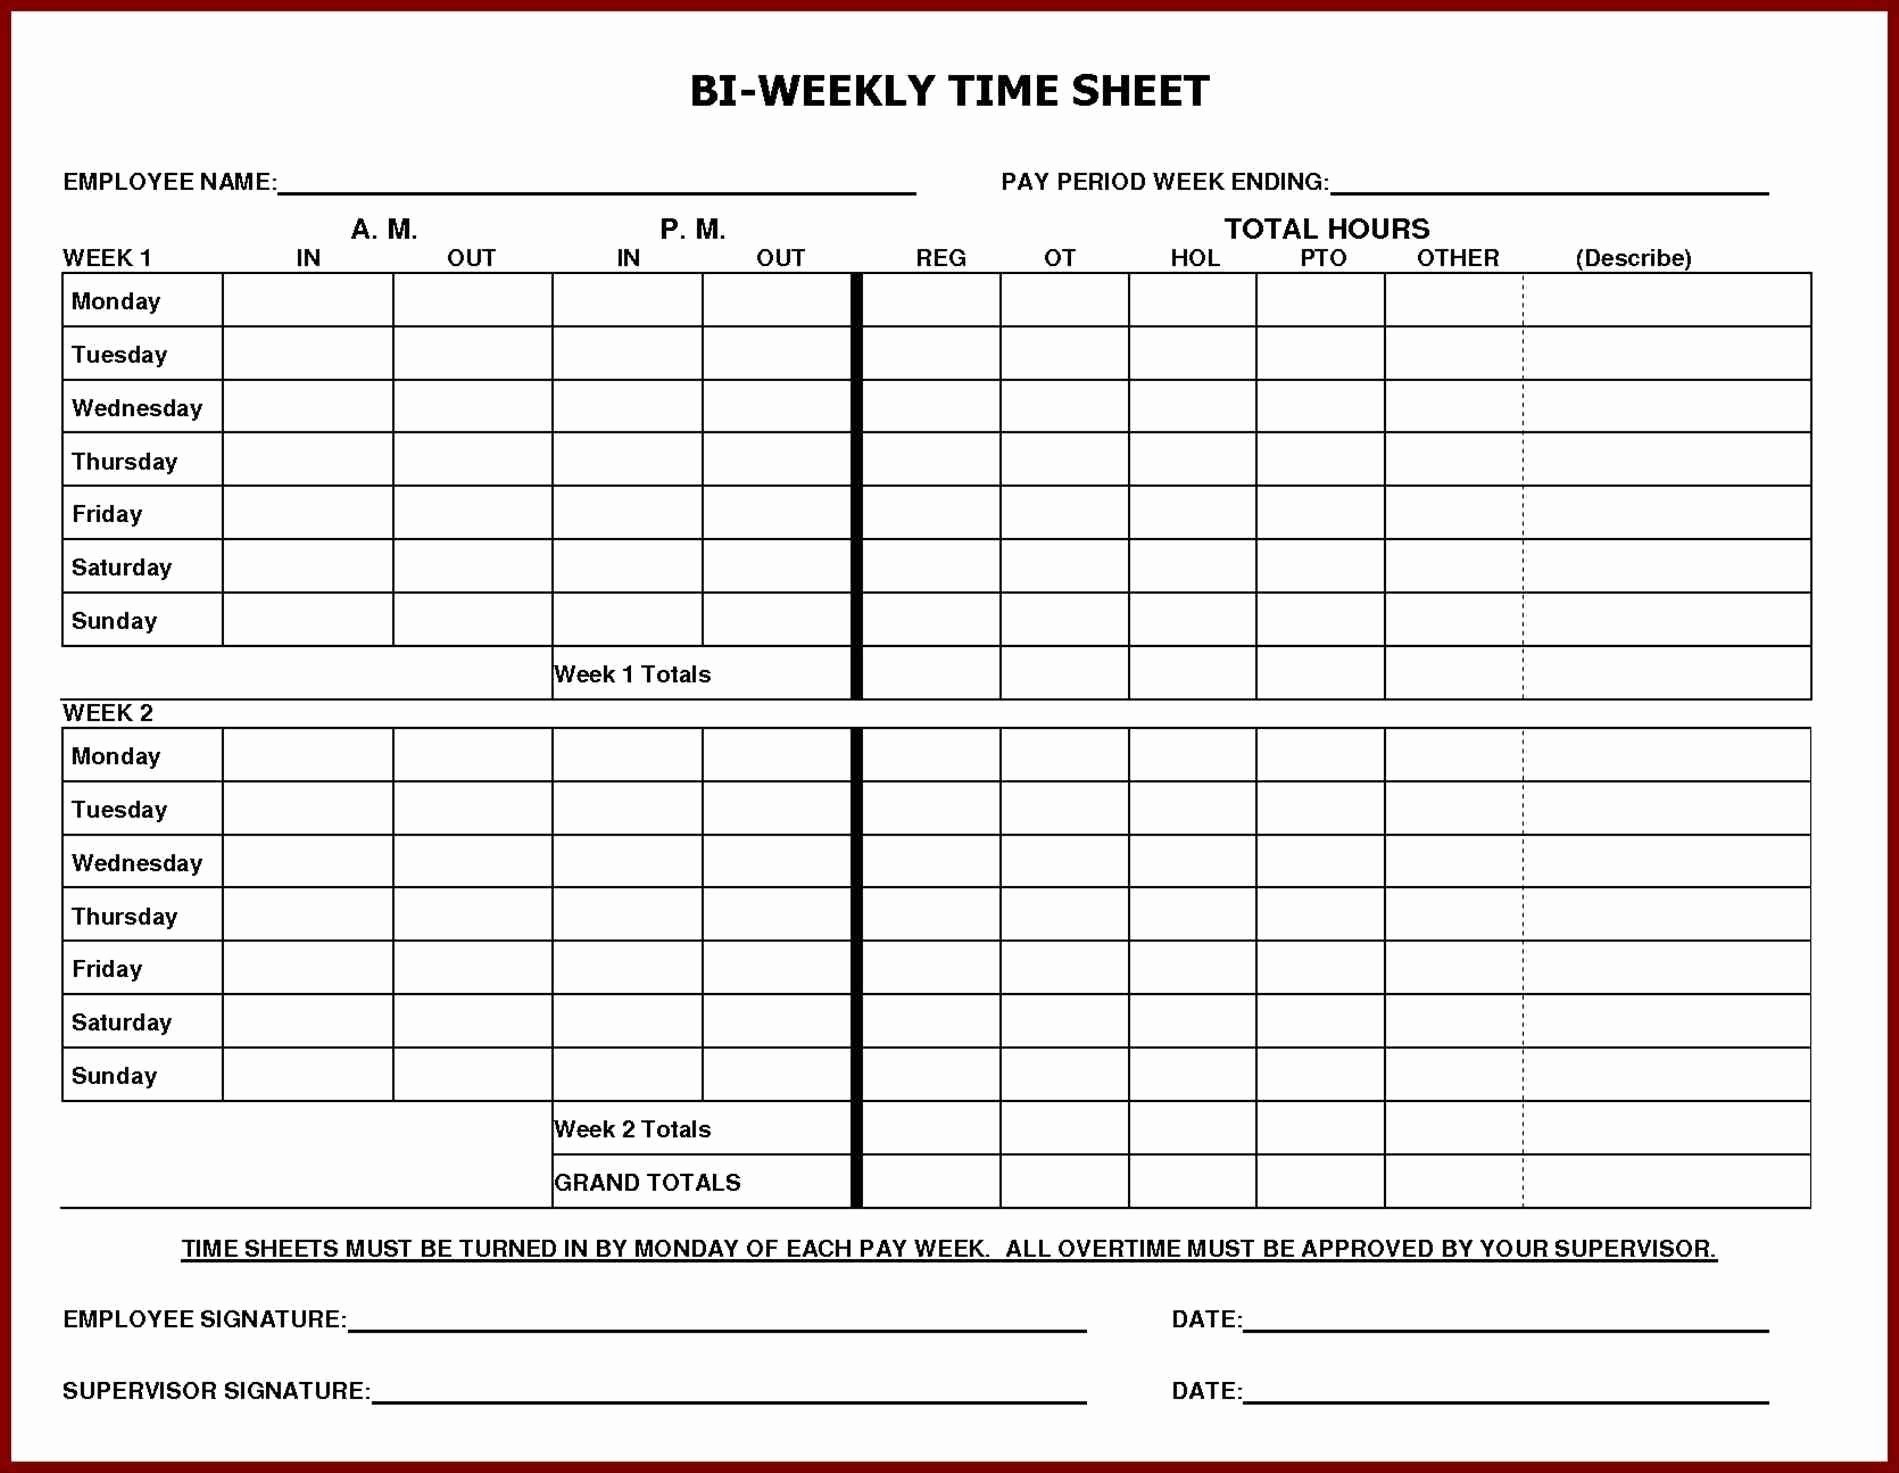 Weekly Employee Timesheet Template | Template Modern Design intended for Printable Blank Bi-Weekly Employee Schedule